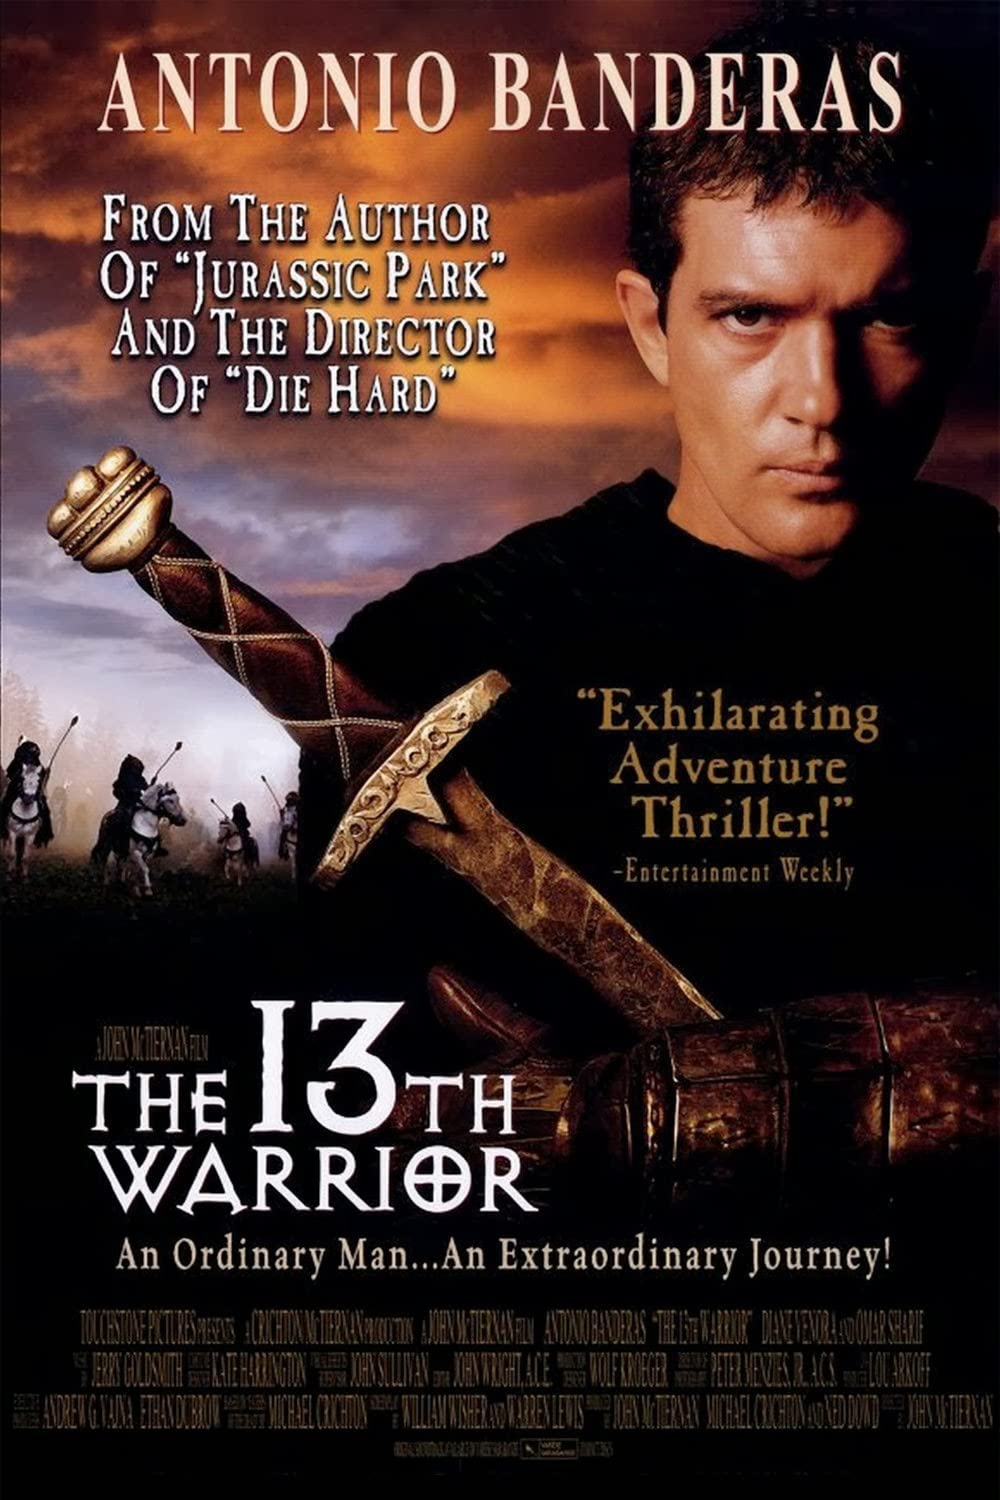 The 13th Warrior 1999 Hindi Dual Audio 1080p BluRay ESubs 1.51GB Download